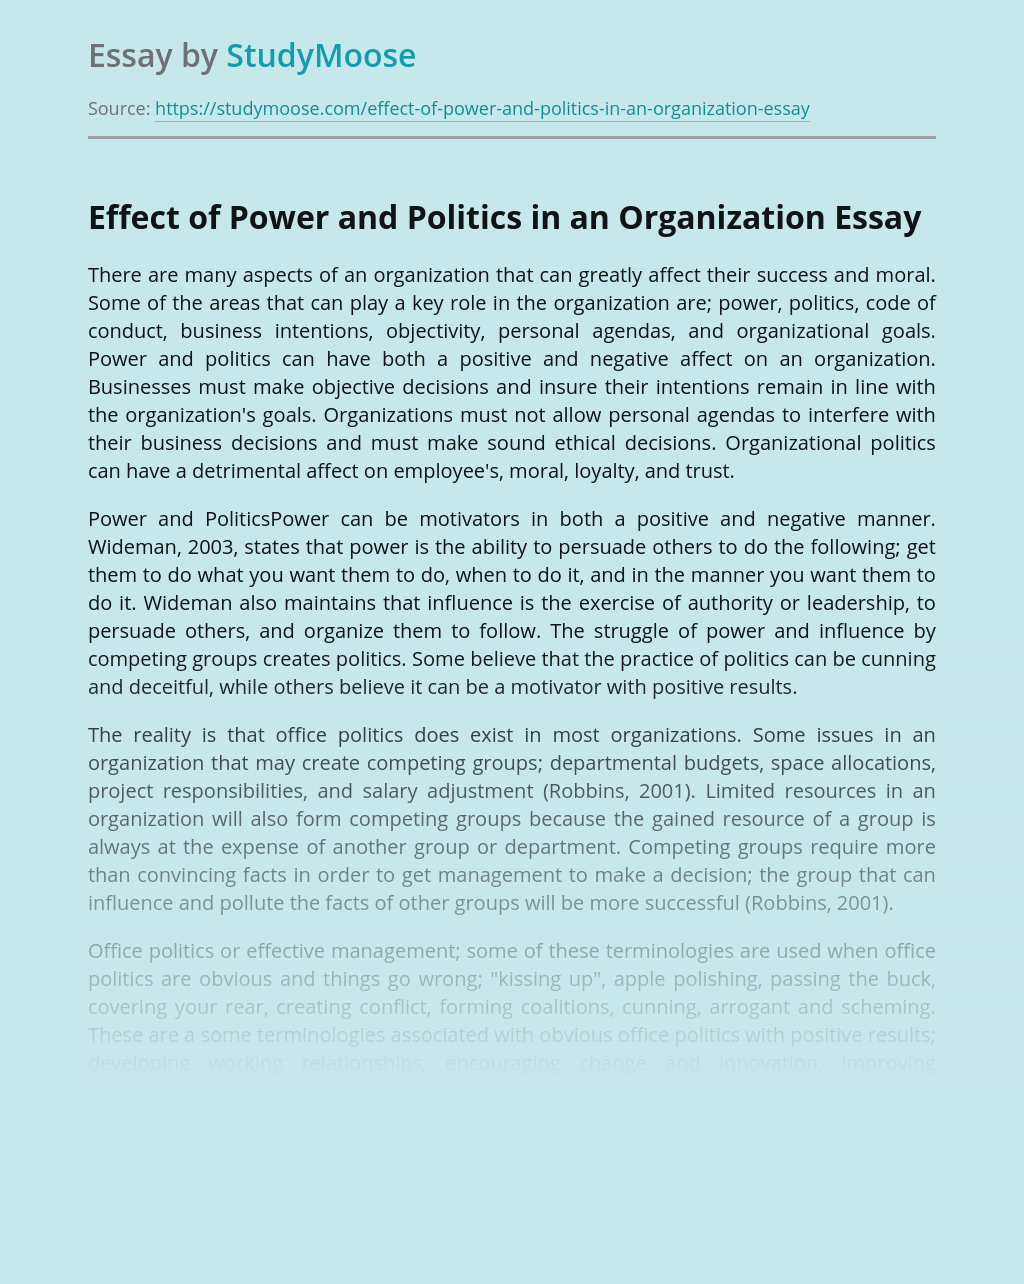 Effect of Power and Politics in an Organization